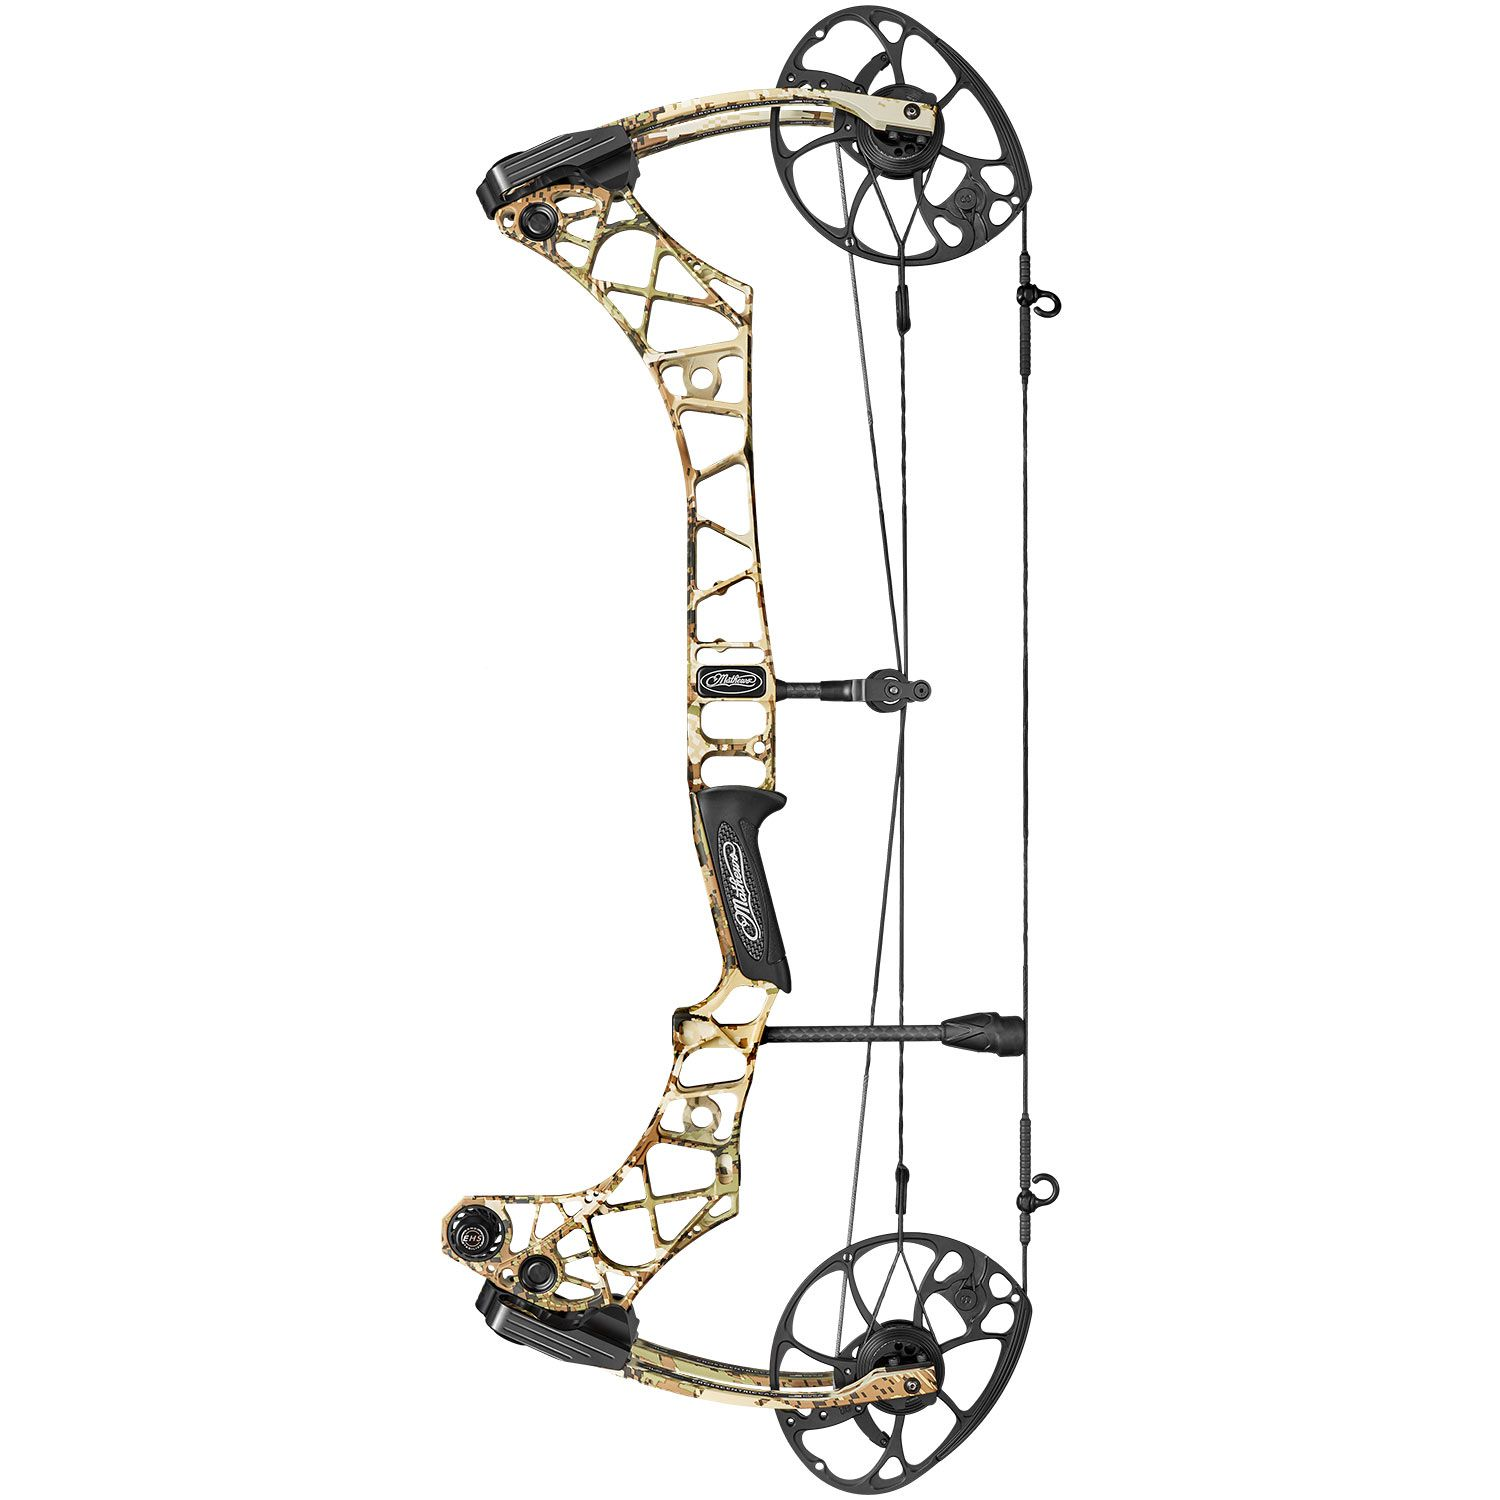 Mathew's new VRX is an example of a flagship bow that is both fast and smooth-shooting.